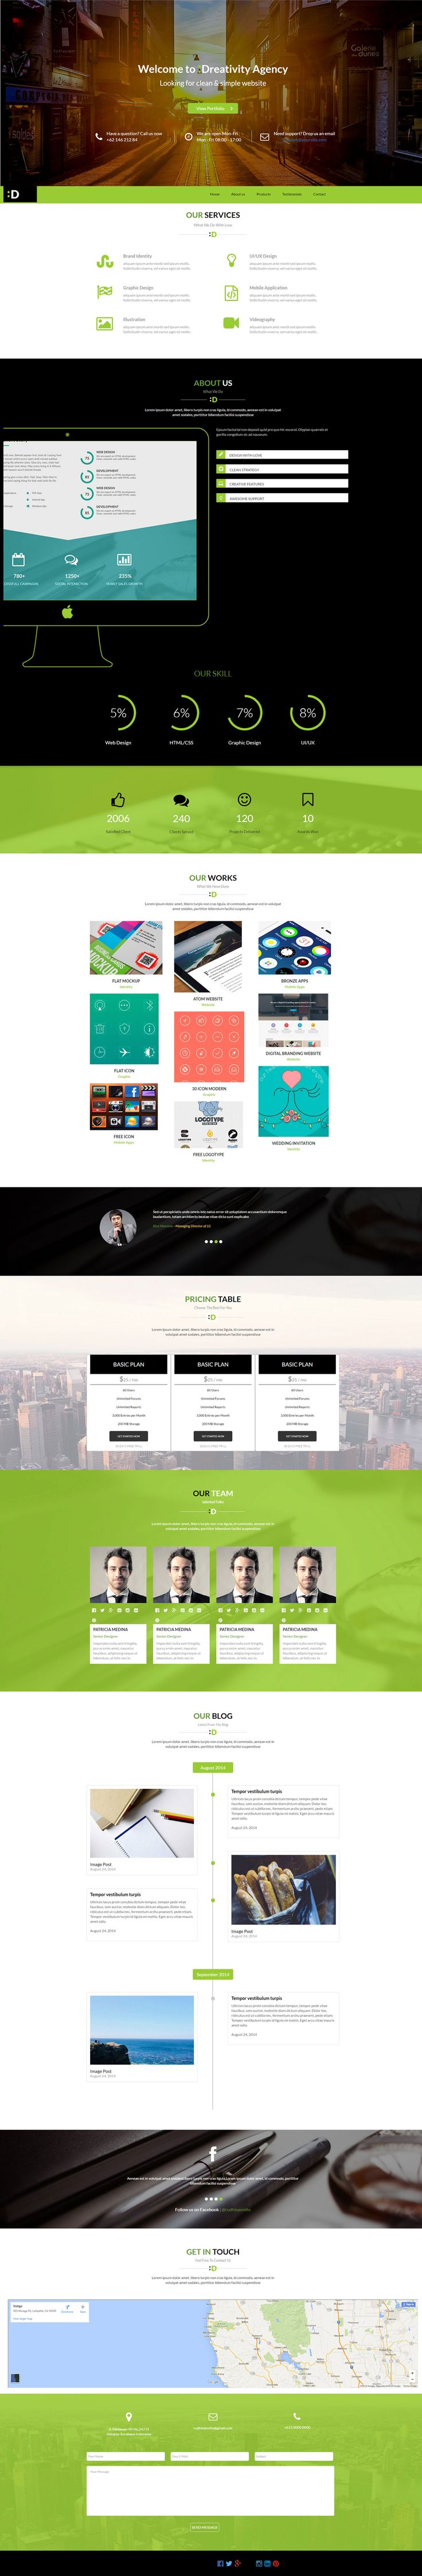 Koala Website Builder - Create your Website.Choose A Template.Beautyful Wibset Templates.Pinteresting on Pinterest. Pinit. Russia Ideas. Design.Landing Page. Best Designers